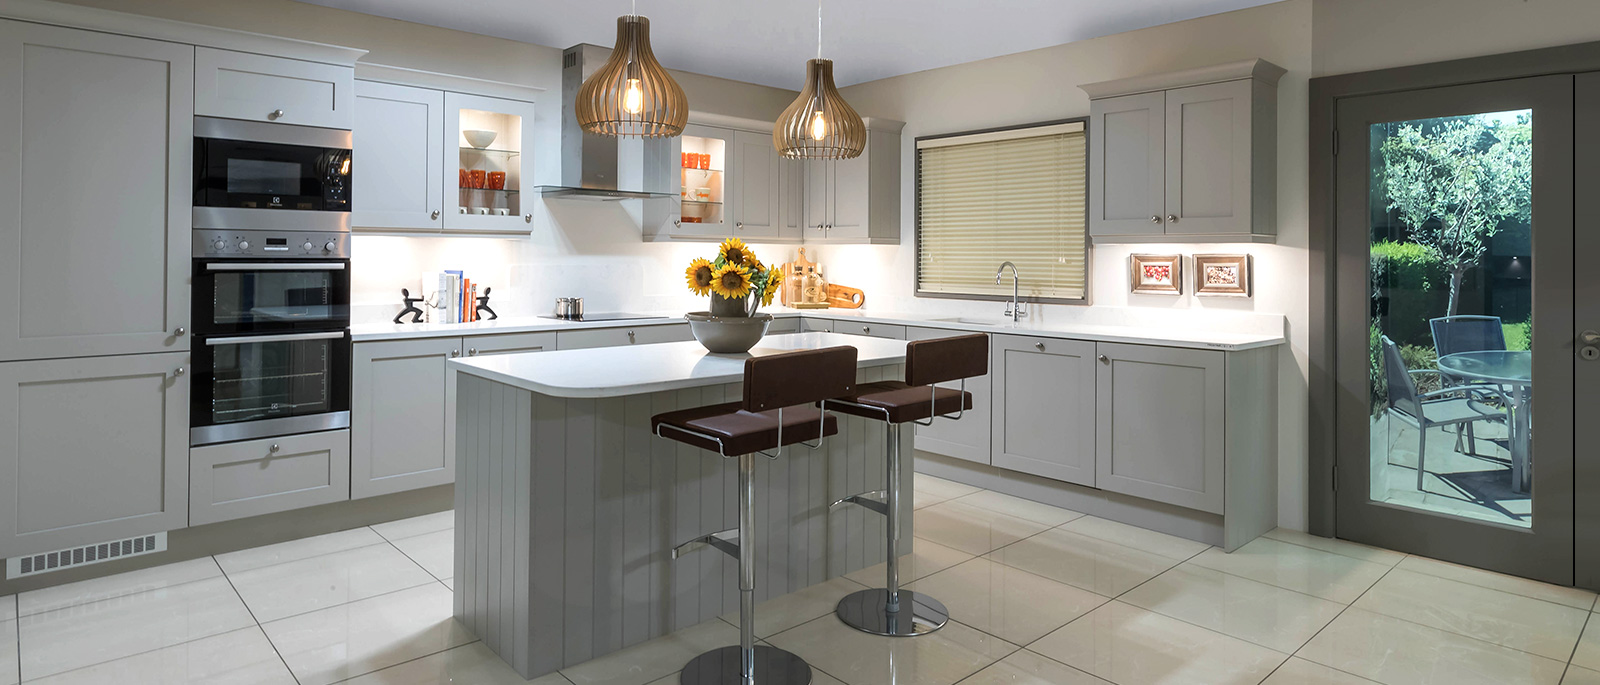 Kitchens nolan kitchens contemporary kitchens fitted for Fitted kitchen cabinets